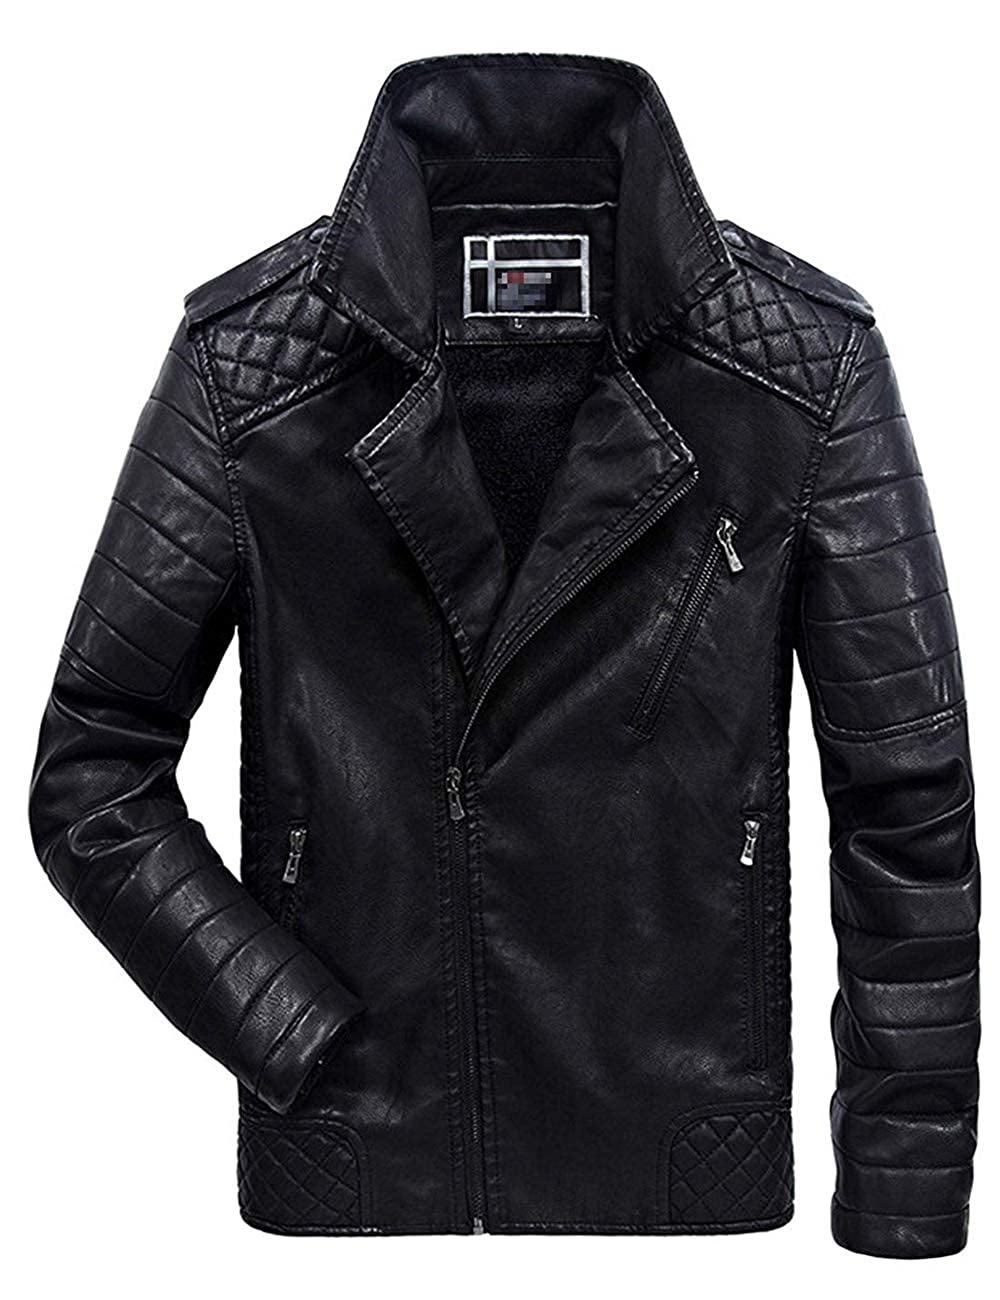 sadness n Mens Asymmetrical Zip Up Fur Lined Faux Leather Jacket